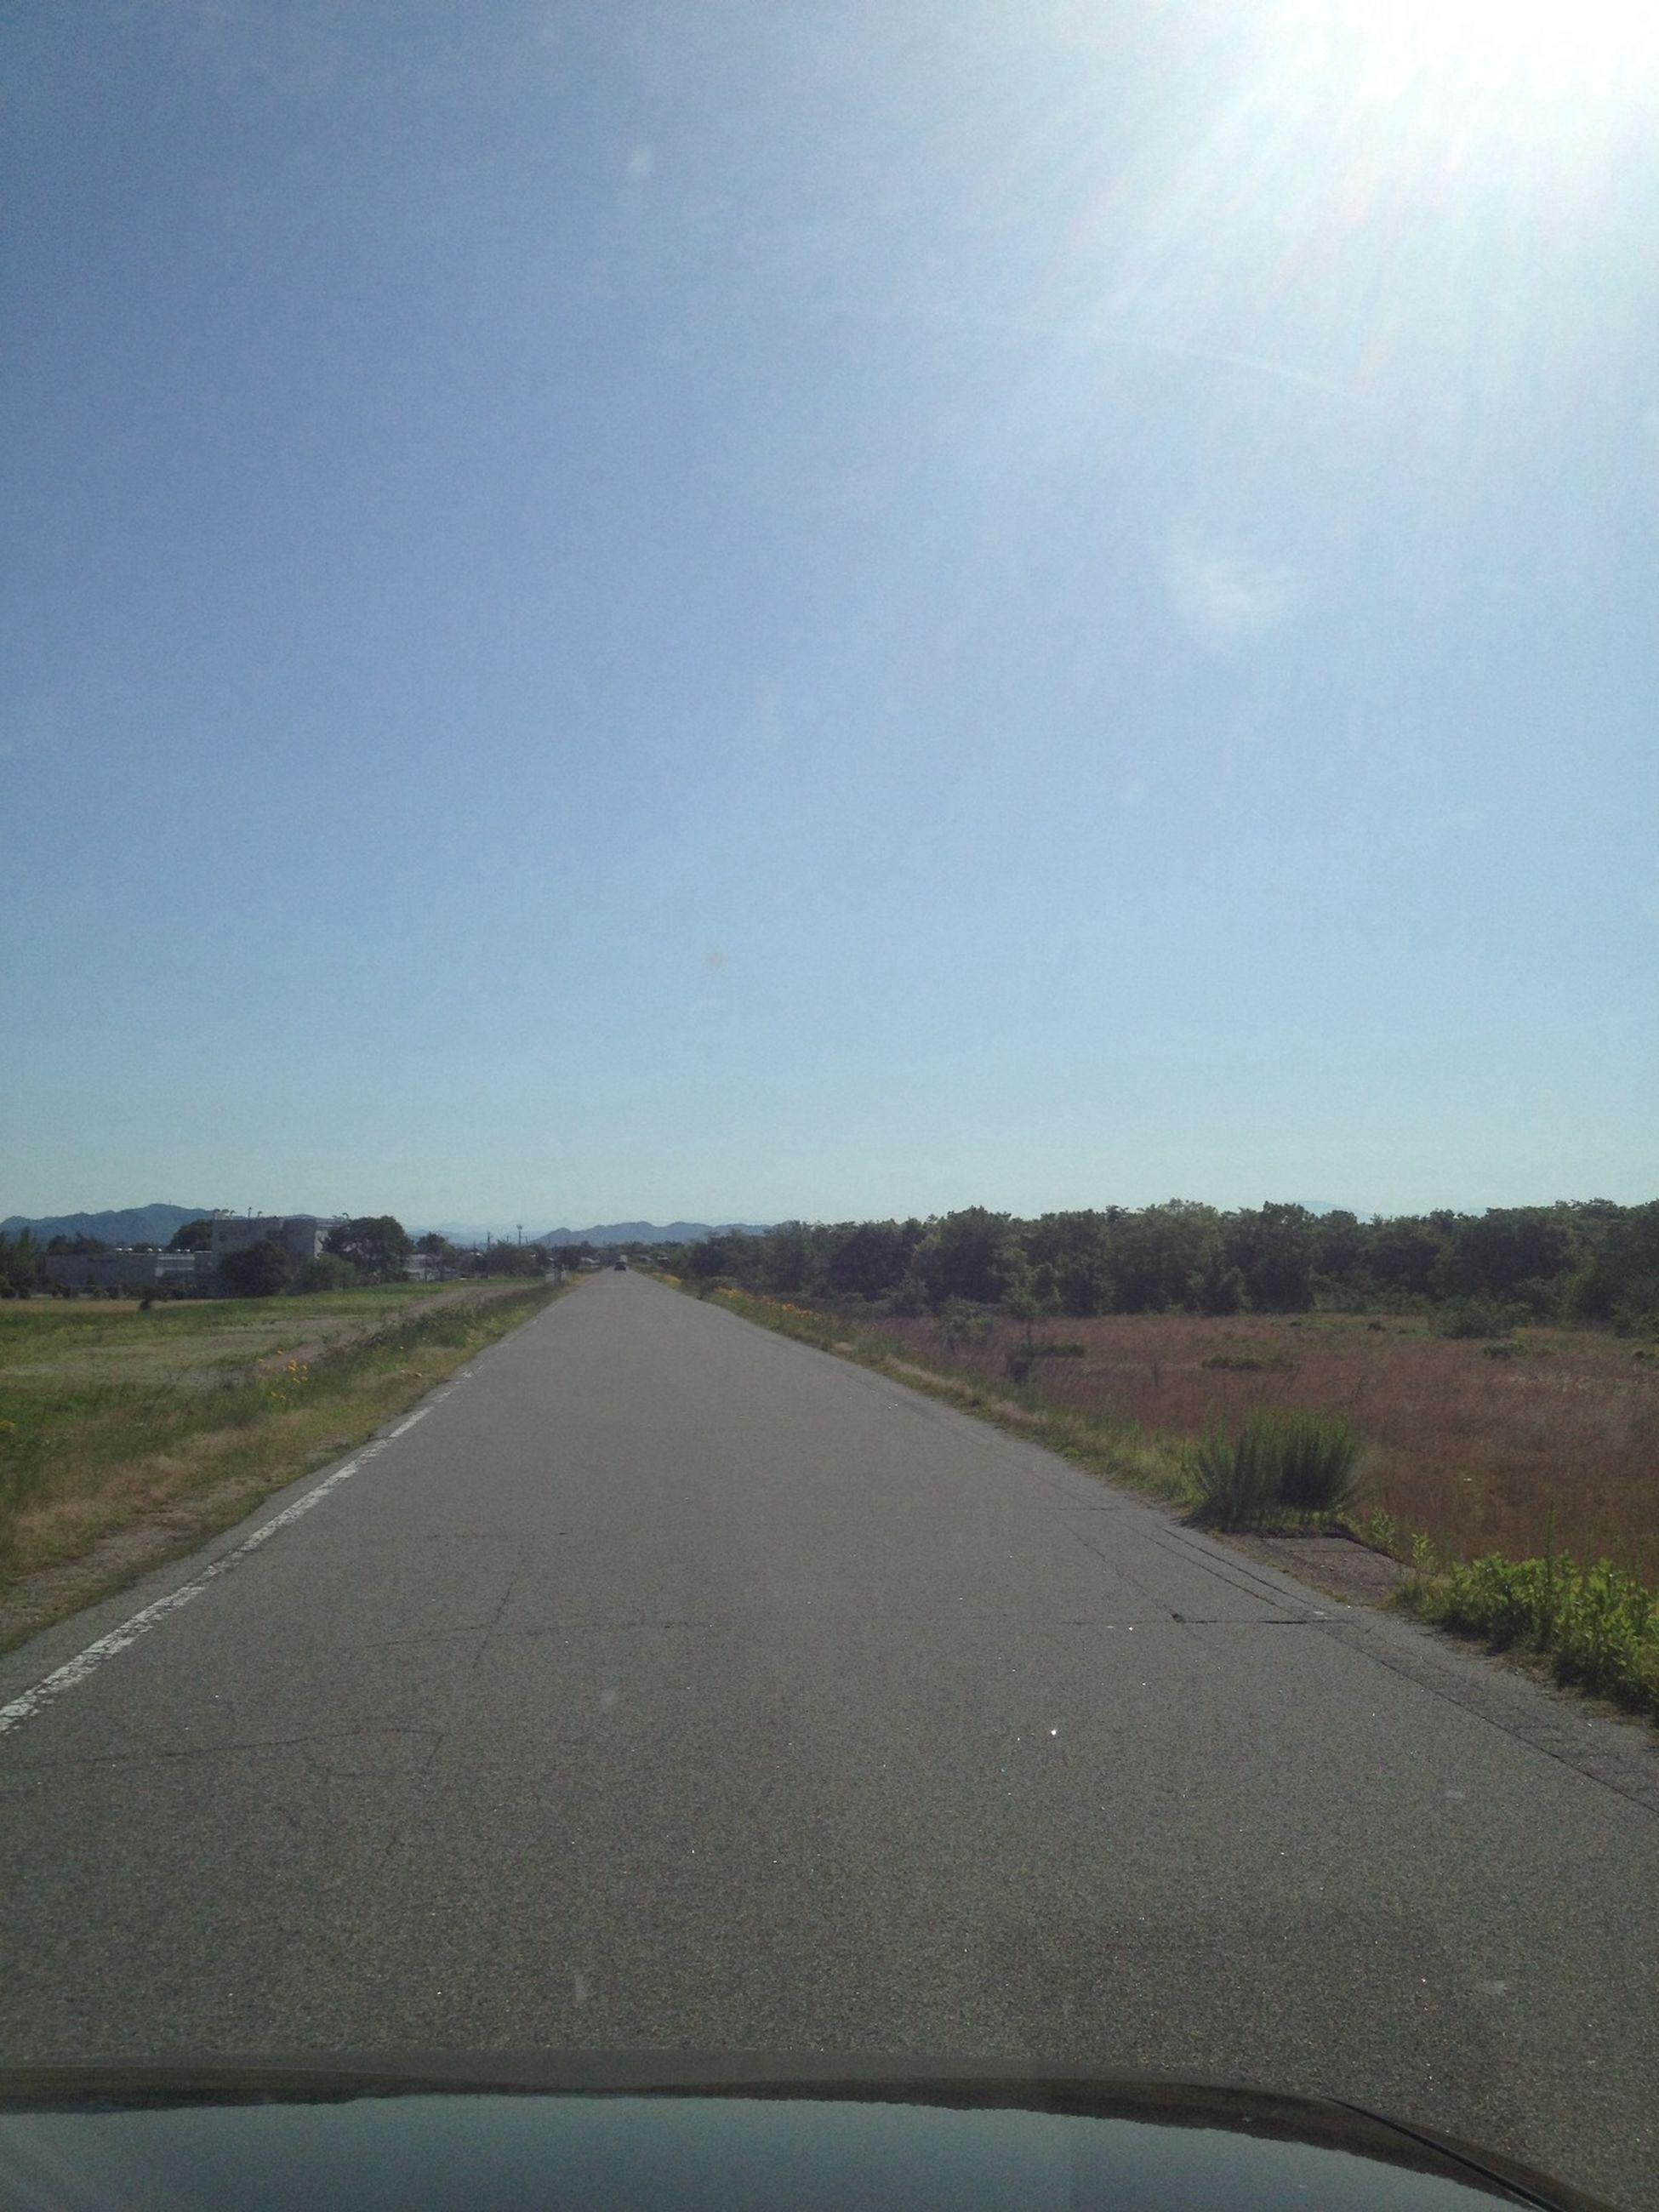 the way forward, road, transportation, diminishing perspective, vanishing point, road marking, country road, clear sky, tranquility, sky, tranquil scene, asphalt, empty road, landscape, copy space, nature, empty, street, day, tree